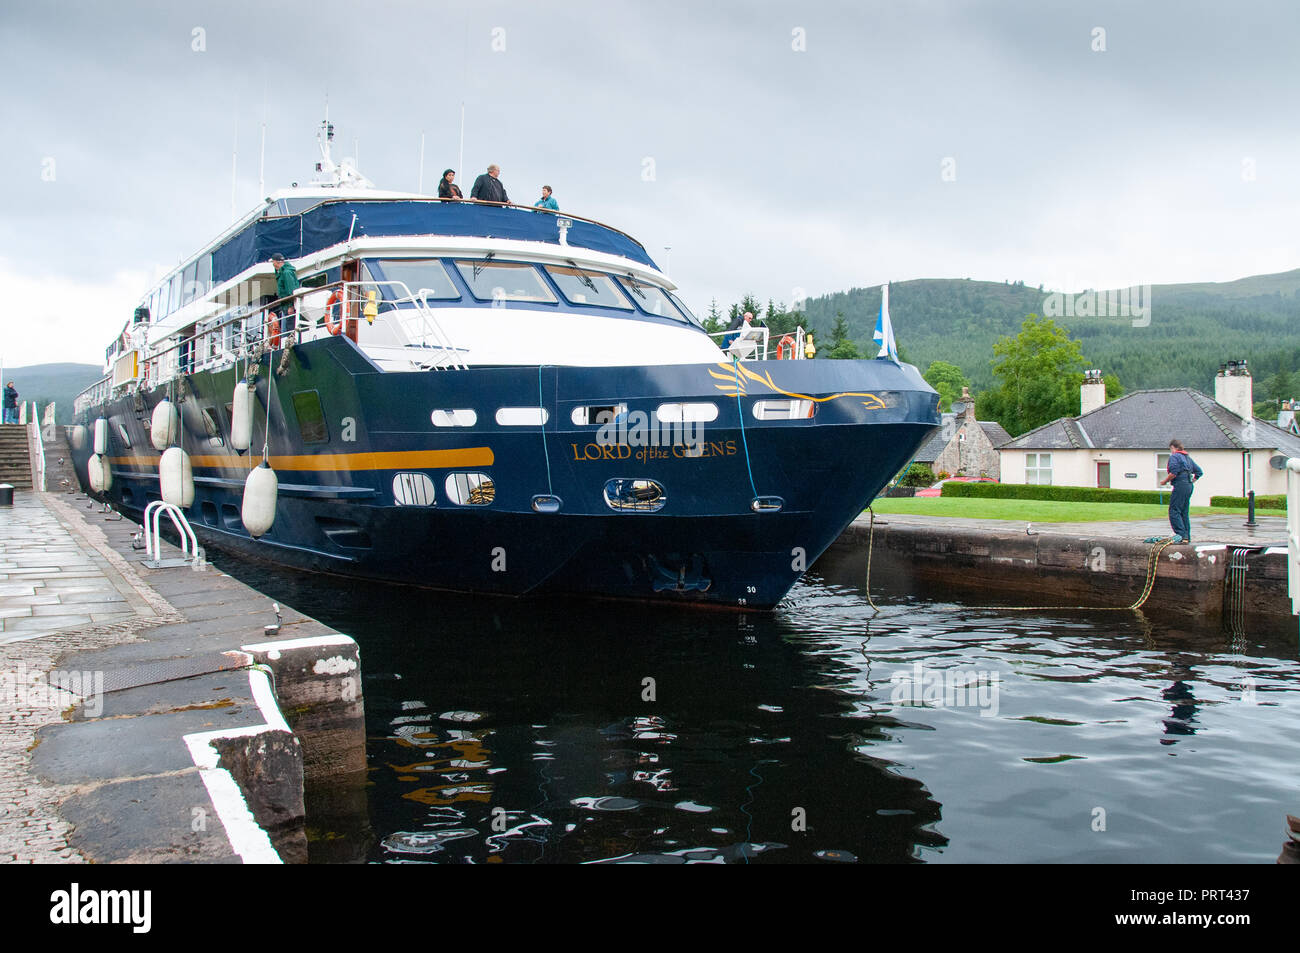 Lord of the Glens pleasure cruiser coming through the narrow lock on the Caledonian canal at Fort Augustus, Scotland - Stock Image